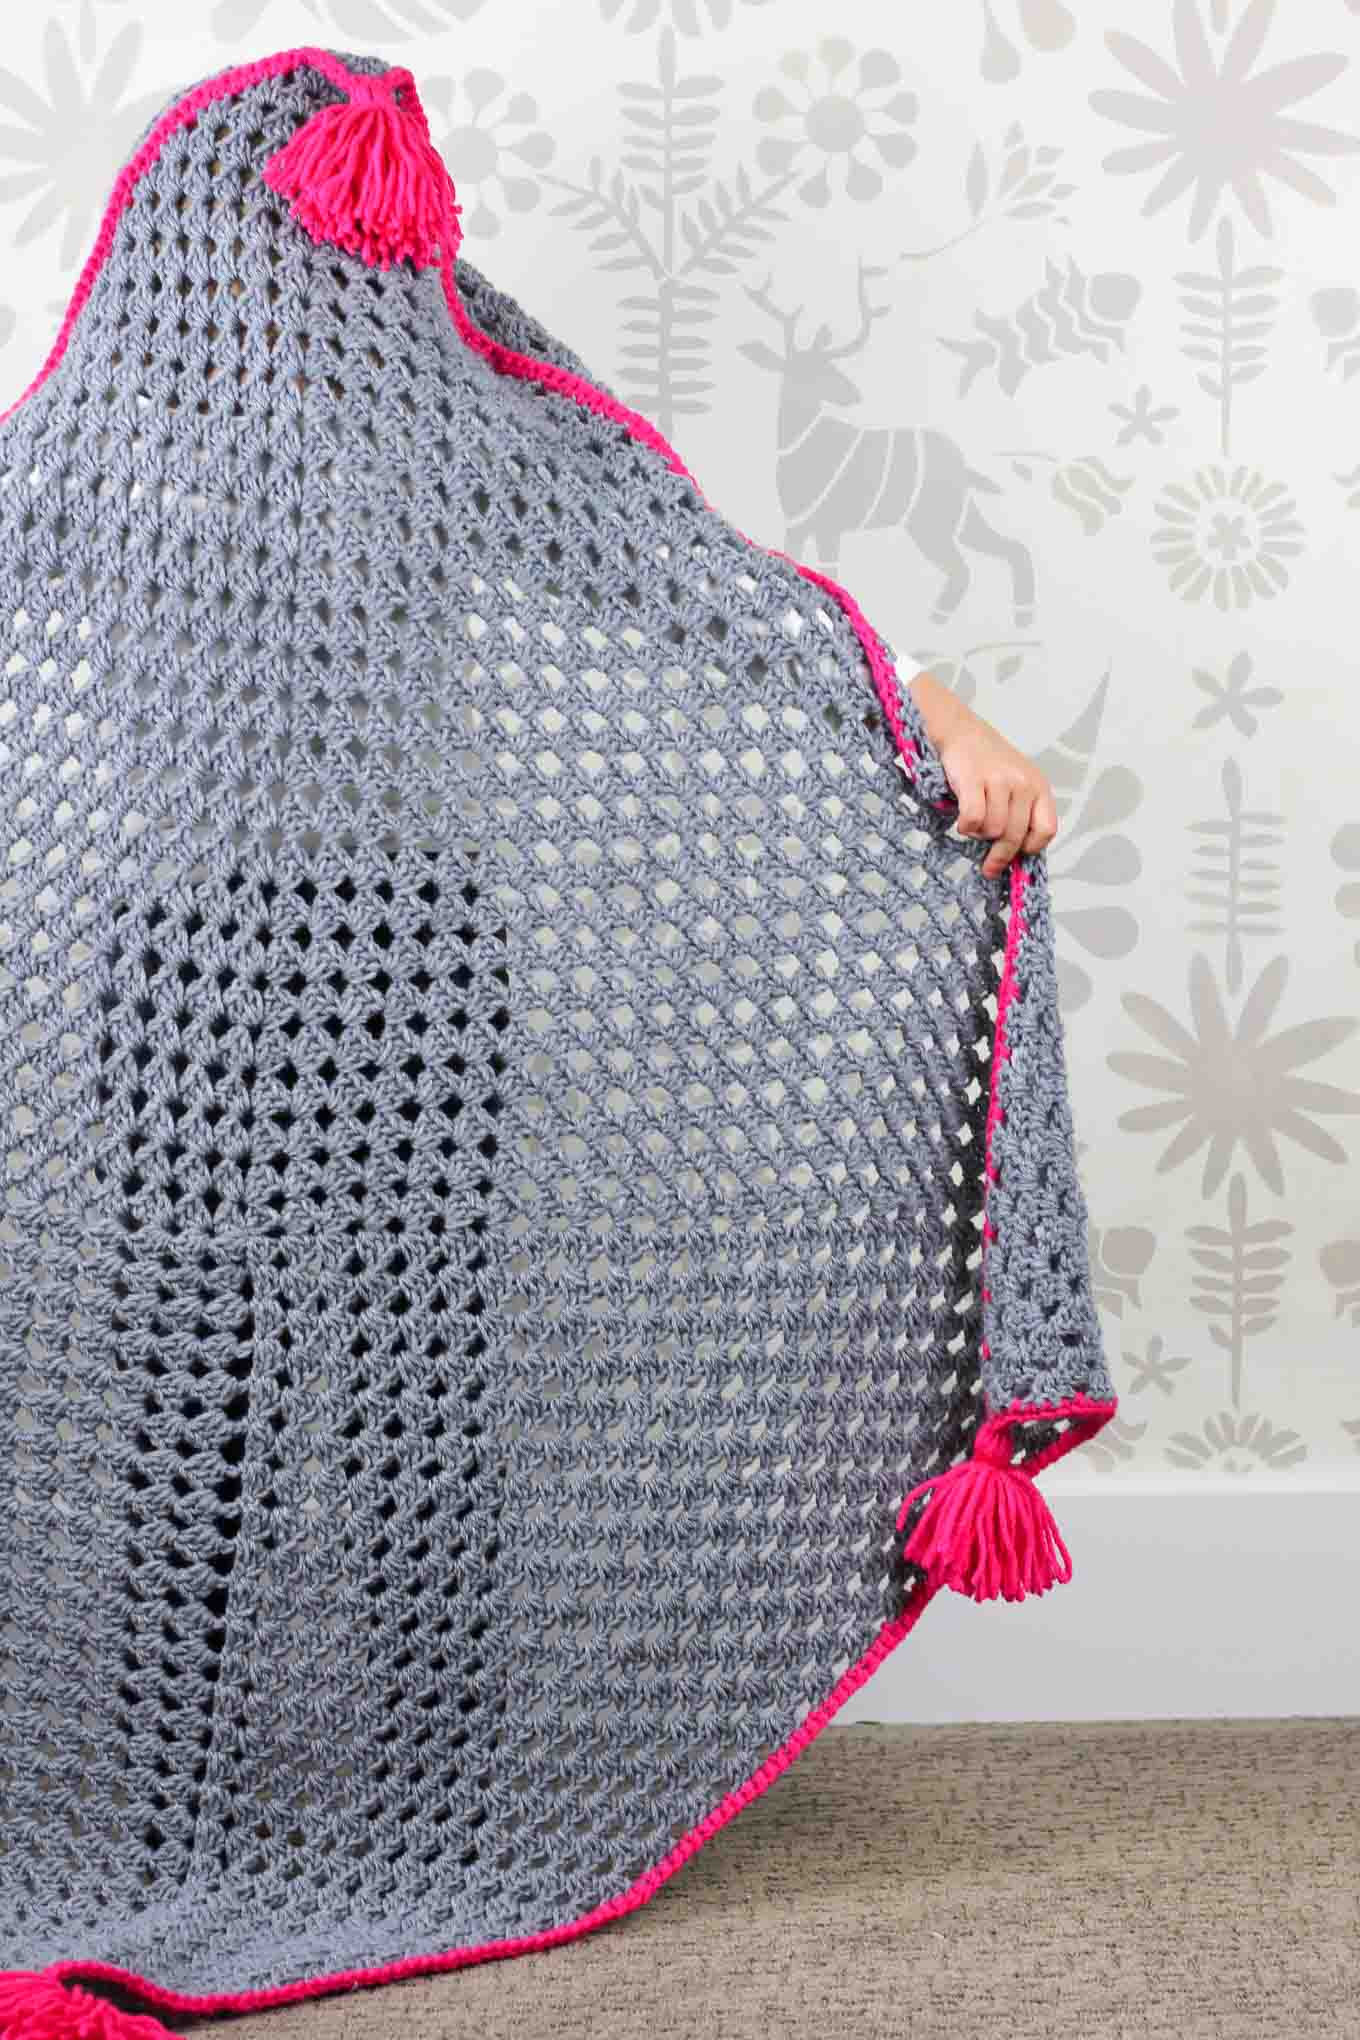 Baby Afghan Awesome Modern Crochet Hooded Baby Blanket Free Pattern for Charity Of Attractive 50 Pics Baby Afghan